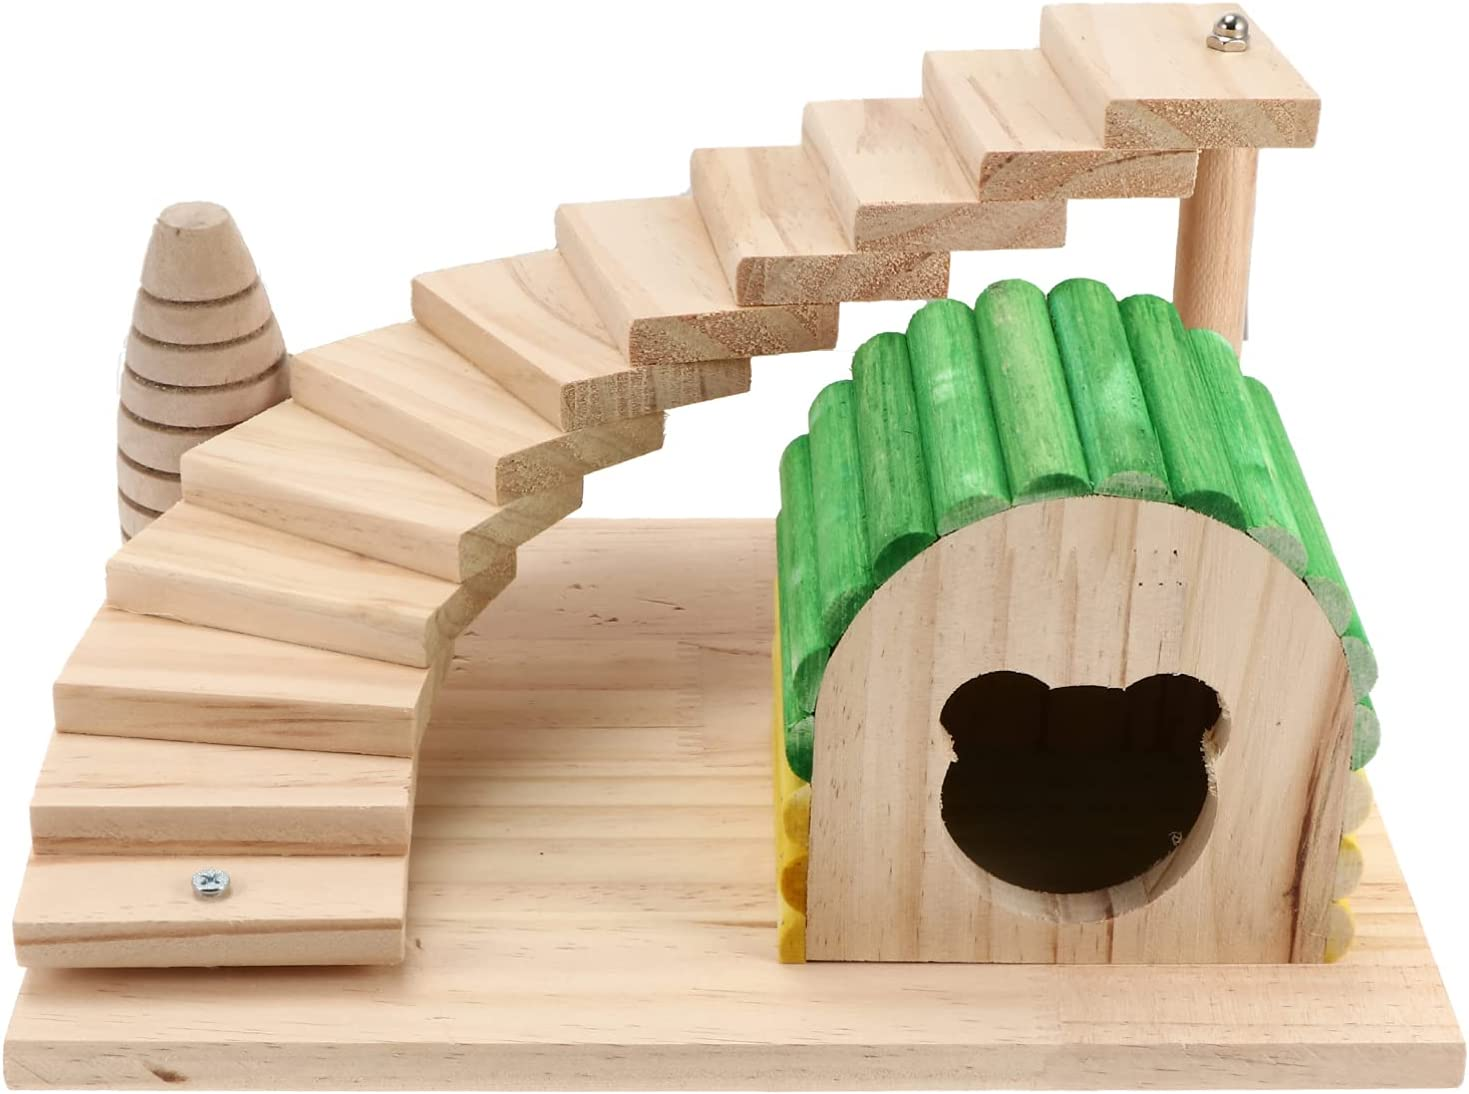 Balacoo Wooden Hamster House Small Excellence Animal Bird Cheap sale Hideout Hid